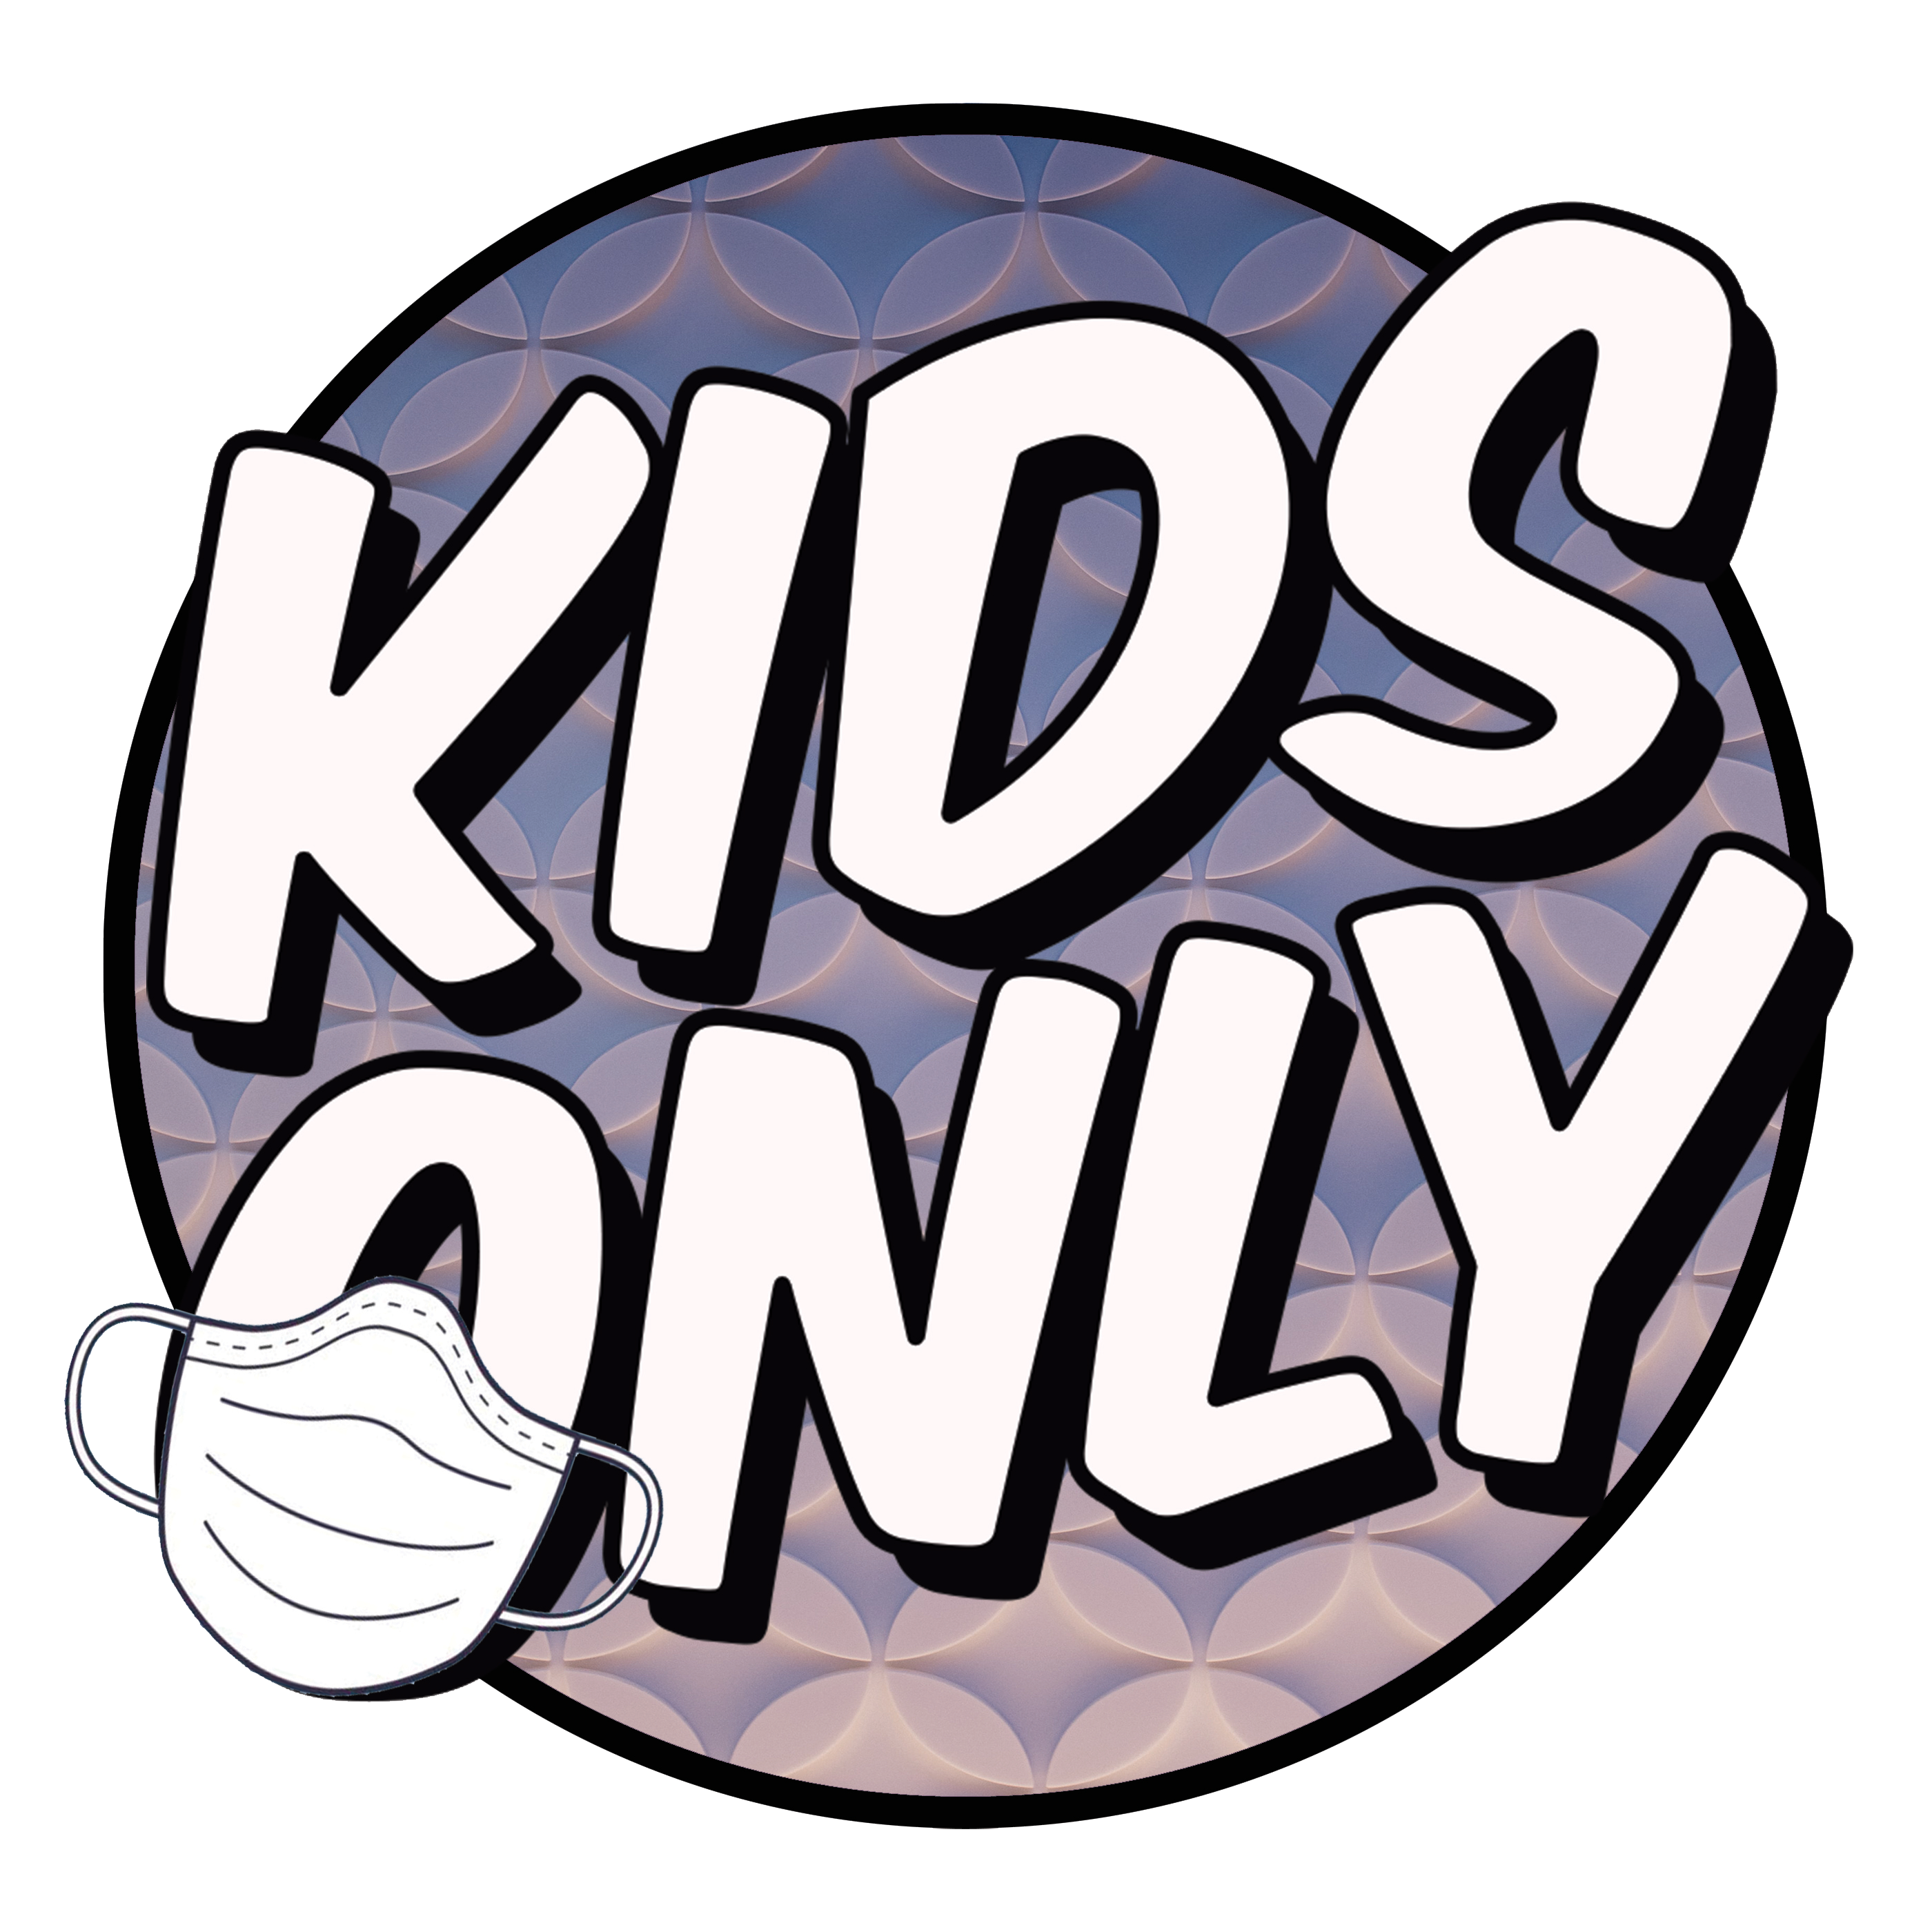 A KIDS ONLY EARLY LEARNING CENTER II